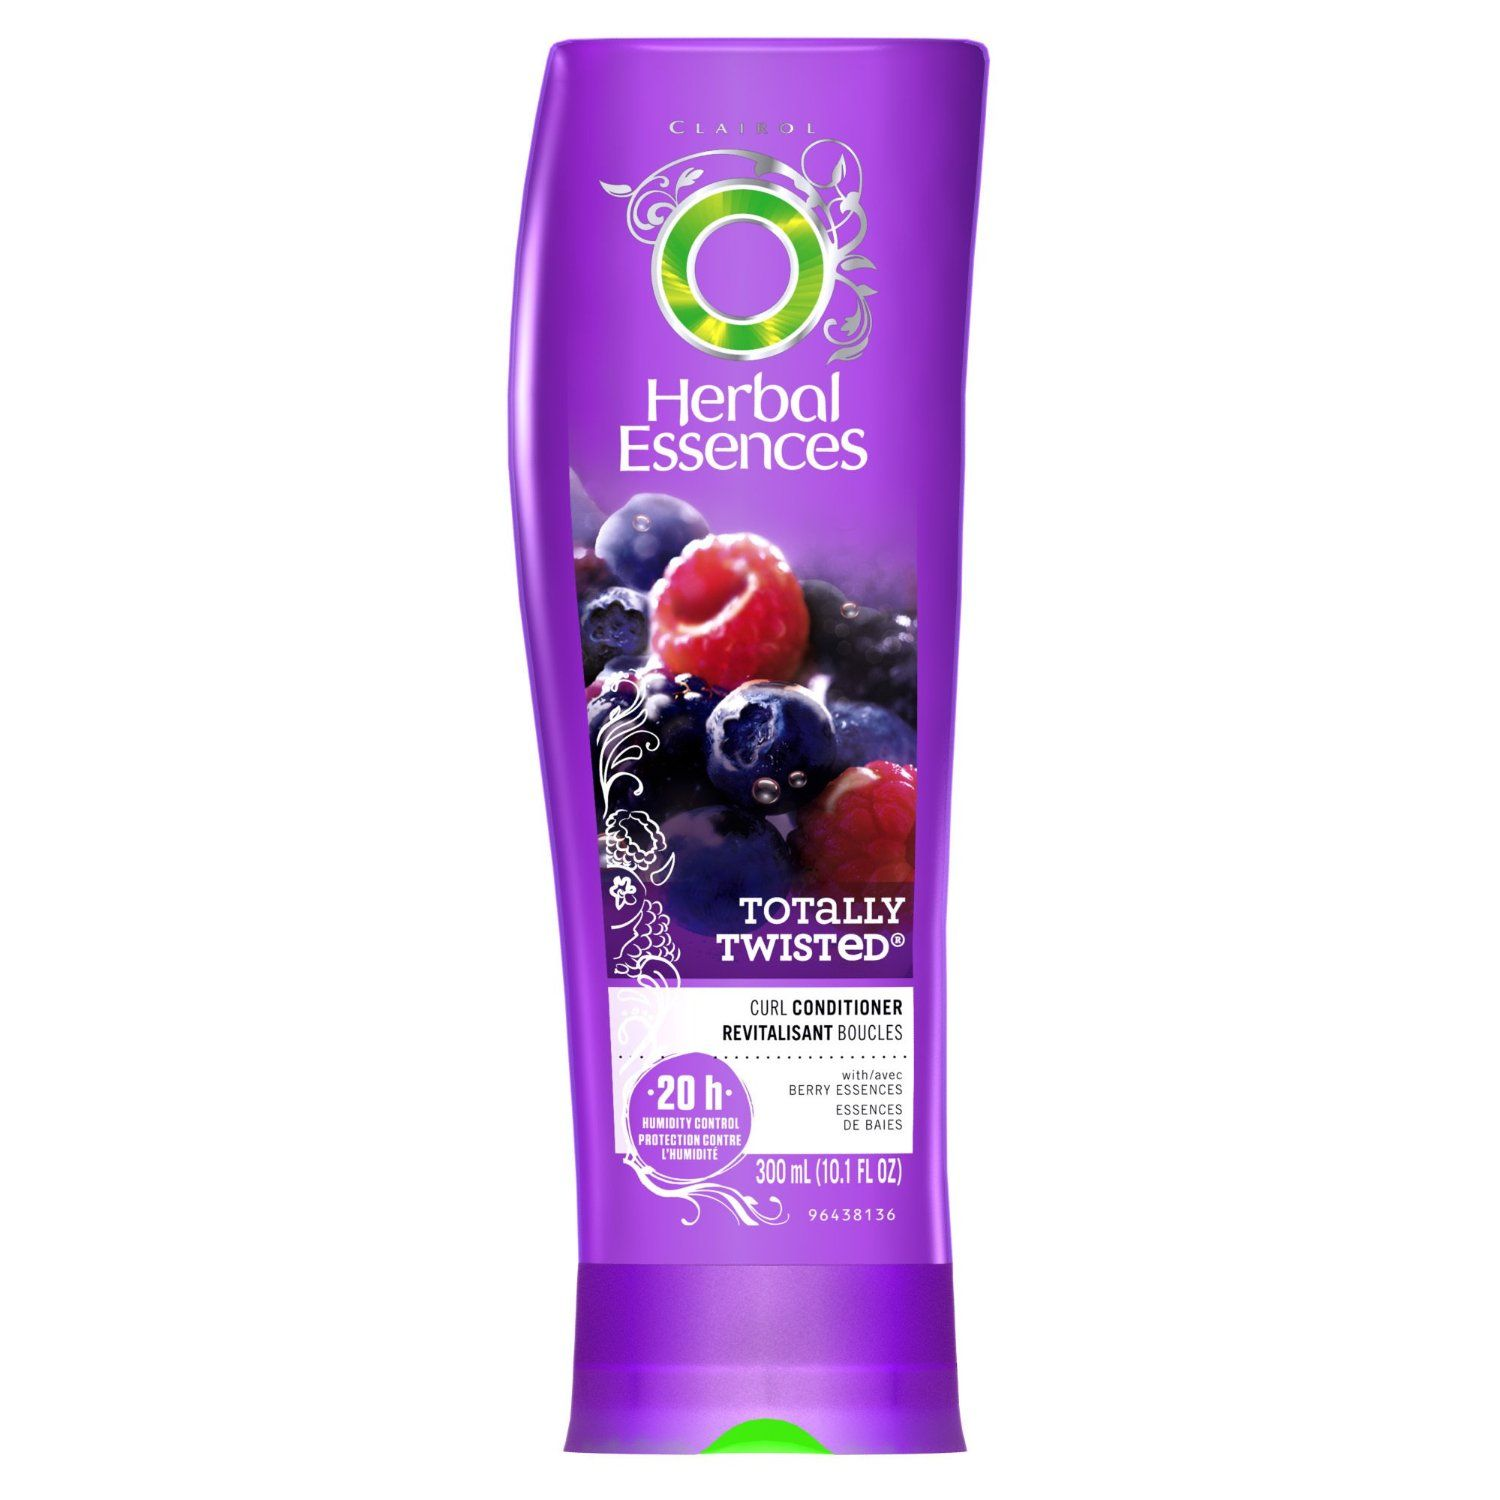 Amazon.com : Herbal Essences Totally Twisted Curl Conditioner 10.1 Fluid Ounce (Pack of 2) : Curl Enhancers : Beauty